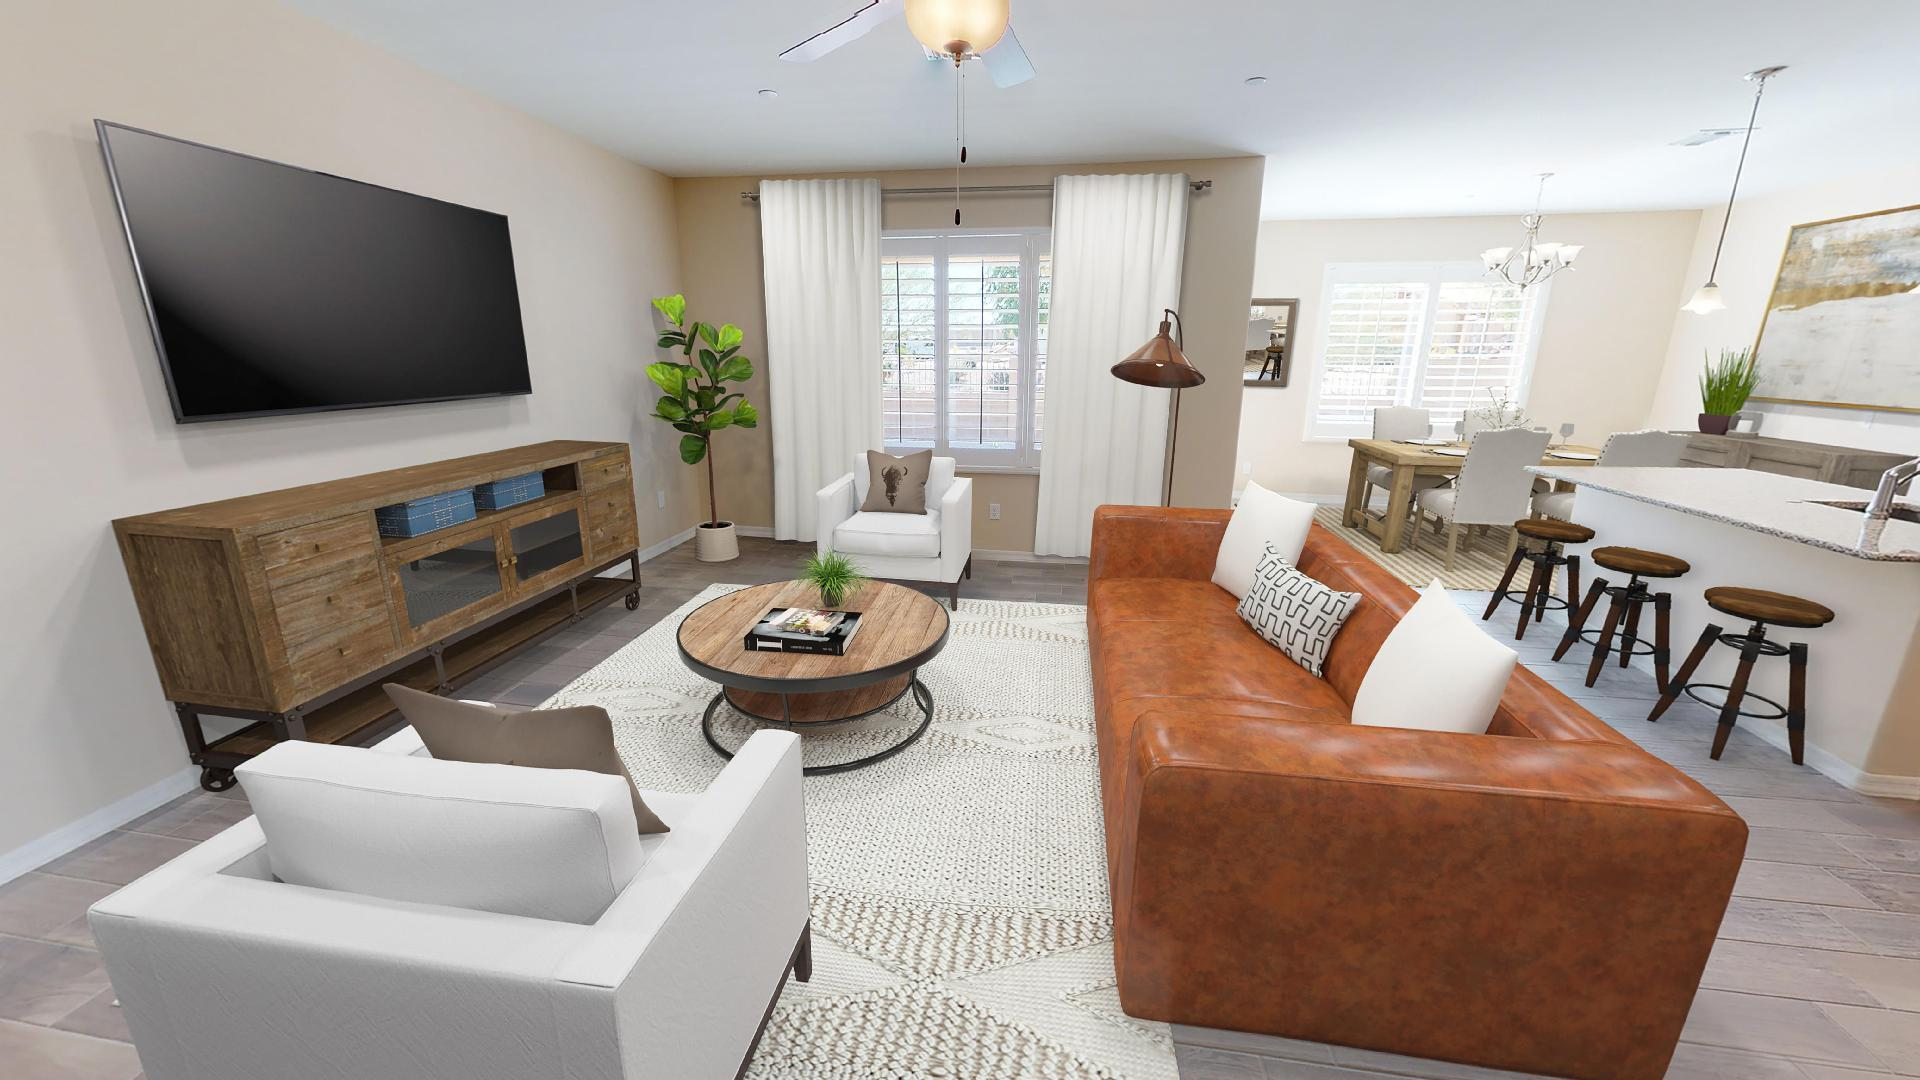 Living Area featured in the Plan 3 By Elliott Homes - Arizona in Yuma, AZ